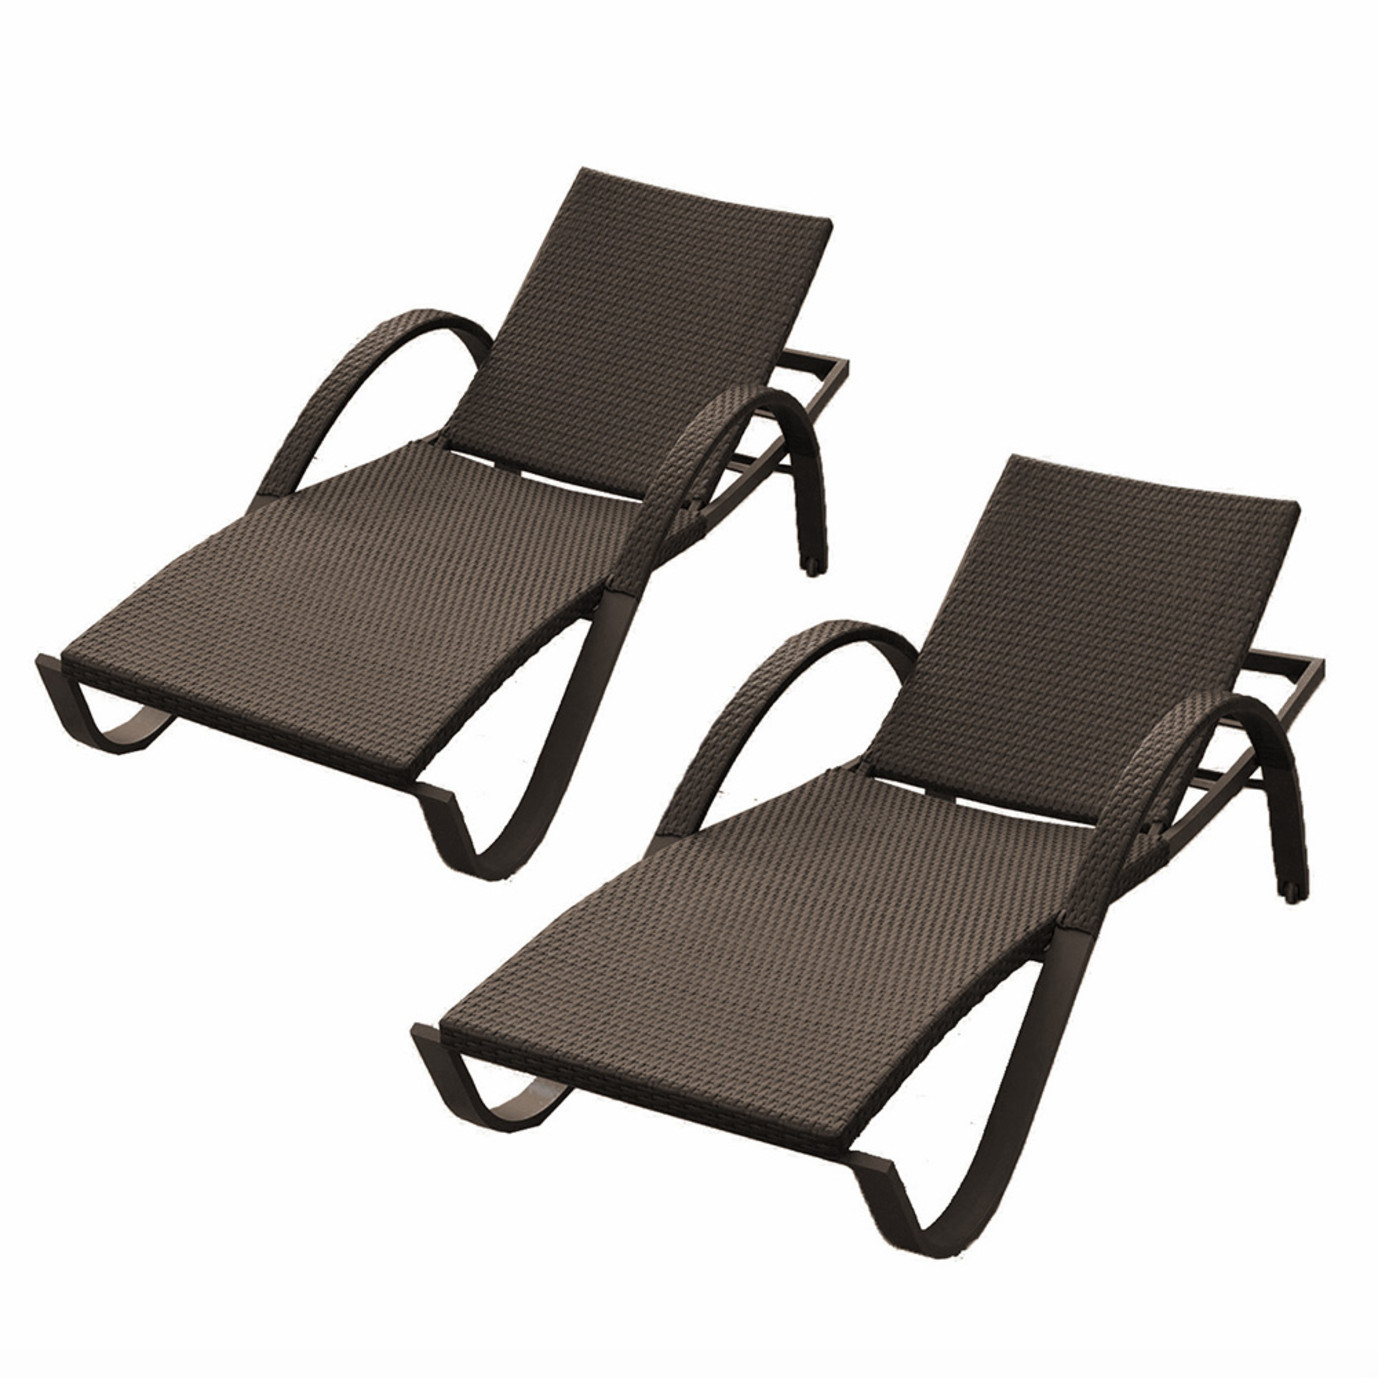 Deco™ Chaise Lounges 2pk